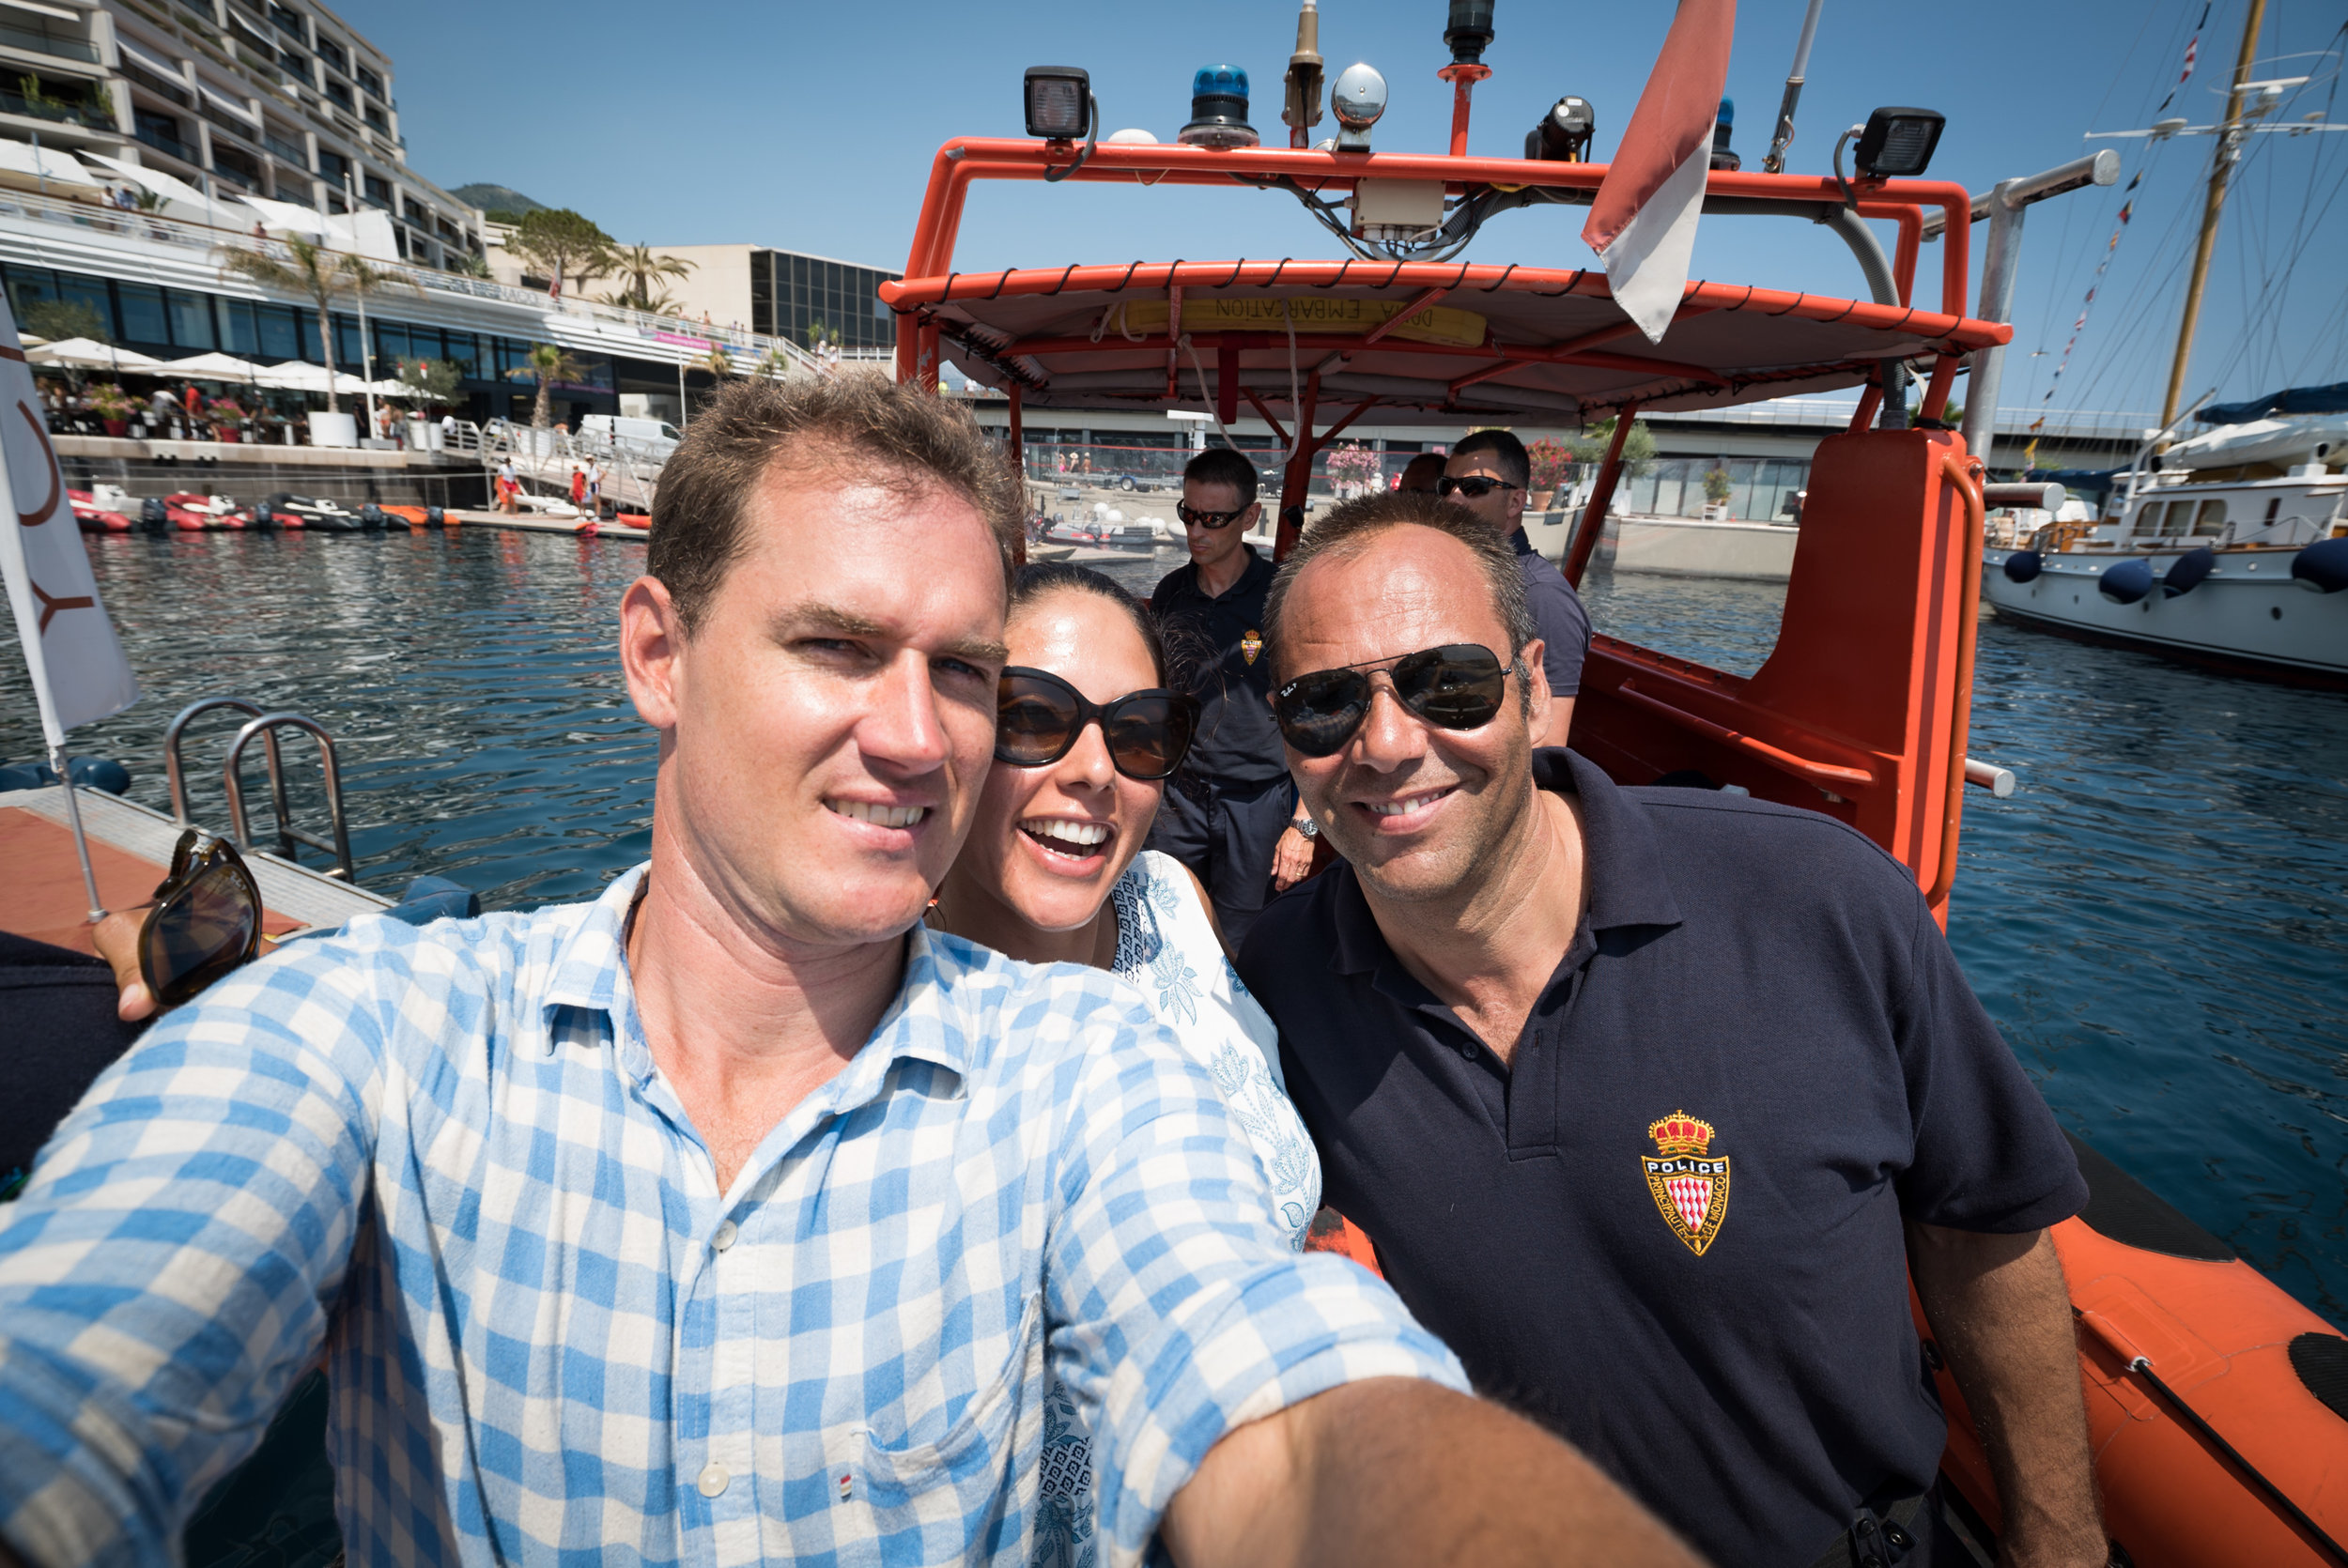 We don't often post 'selfies', but we couldn't resist. Co-director James Sherwood & Danielle Ryan with the Monaco Police.